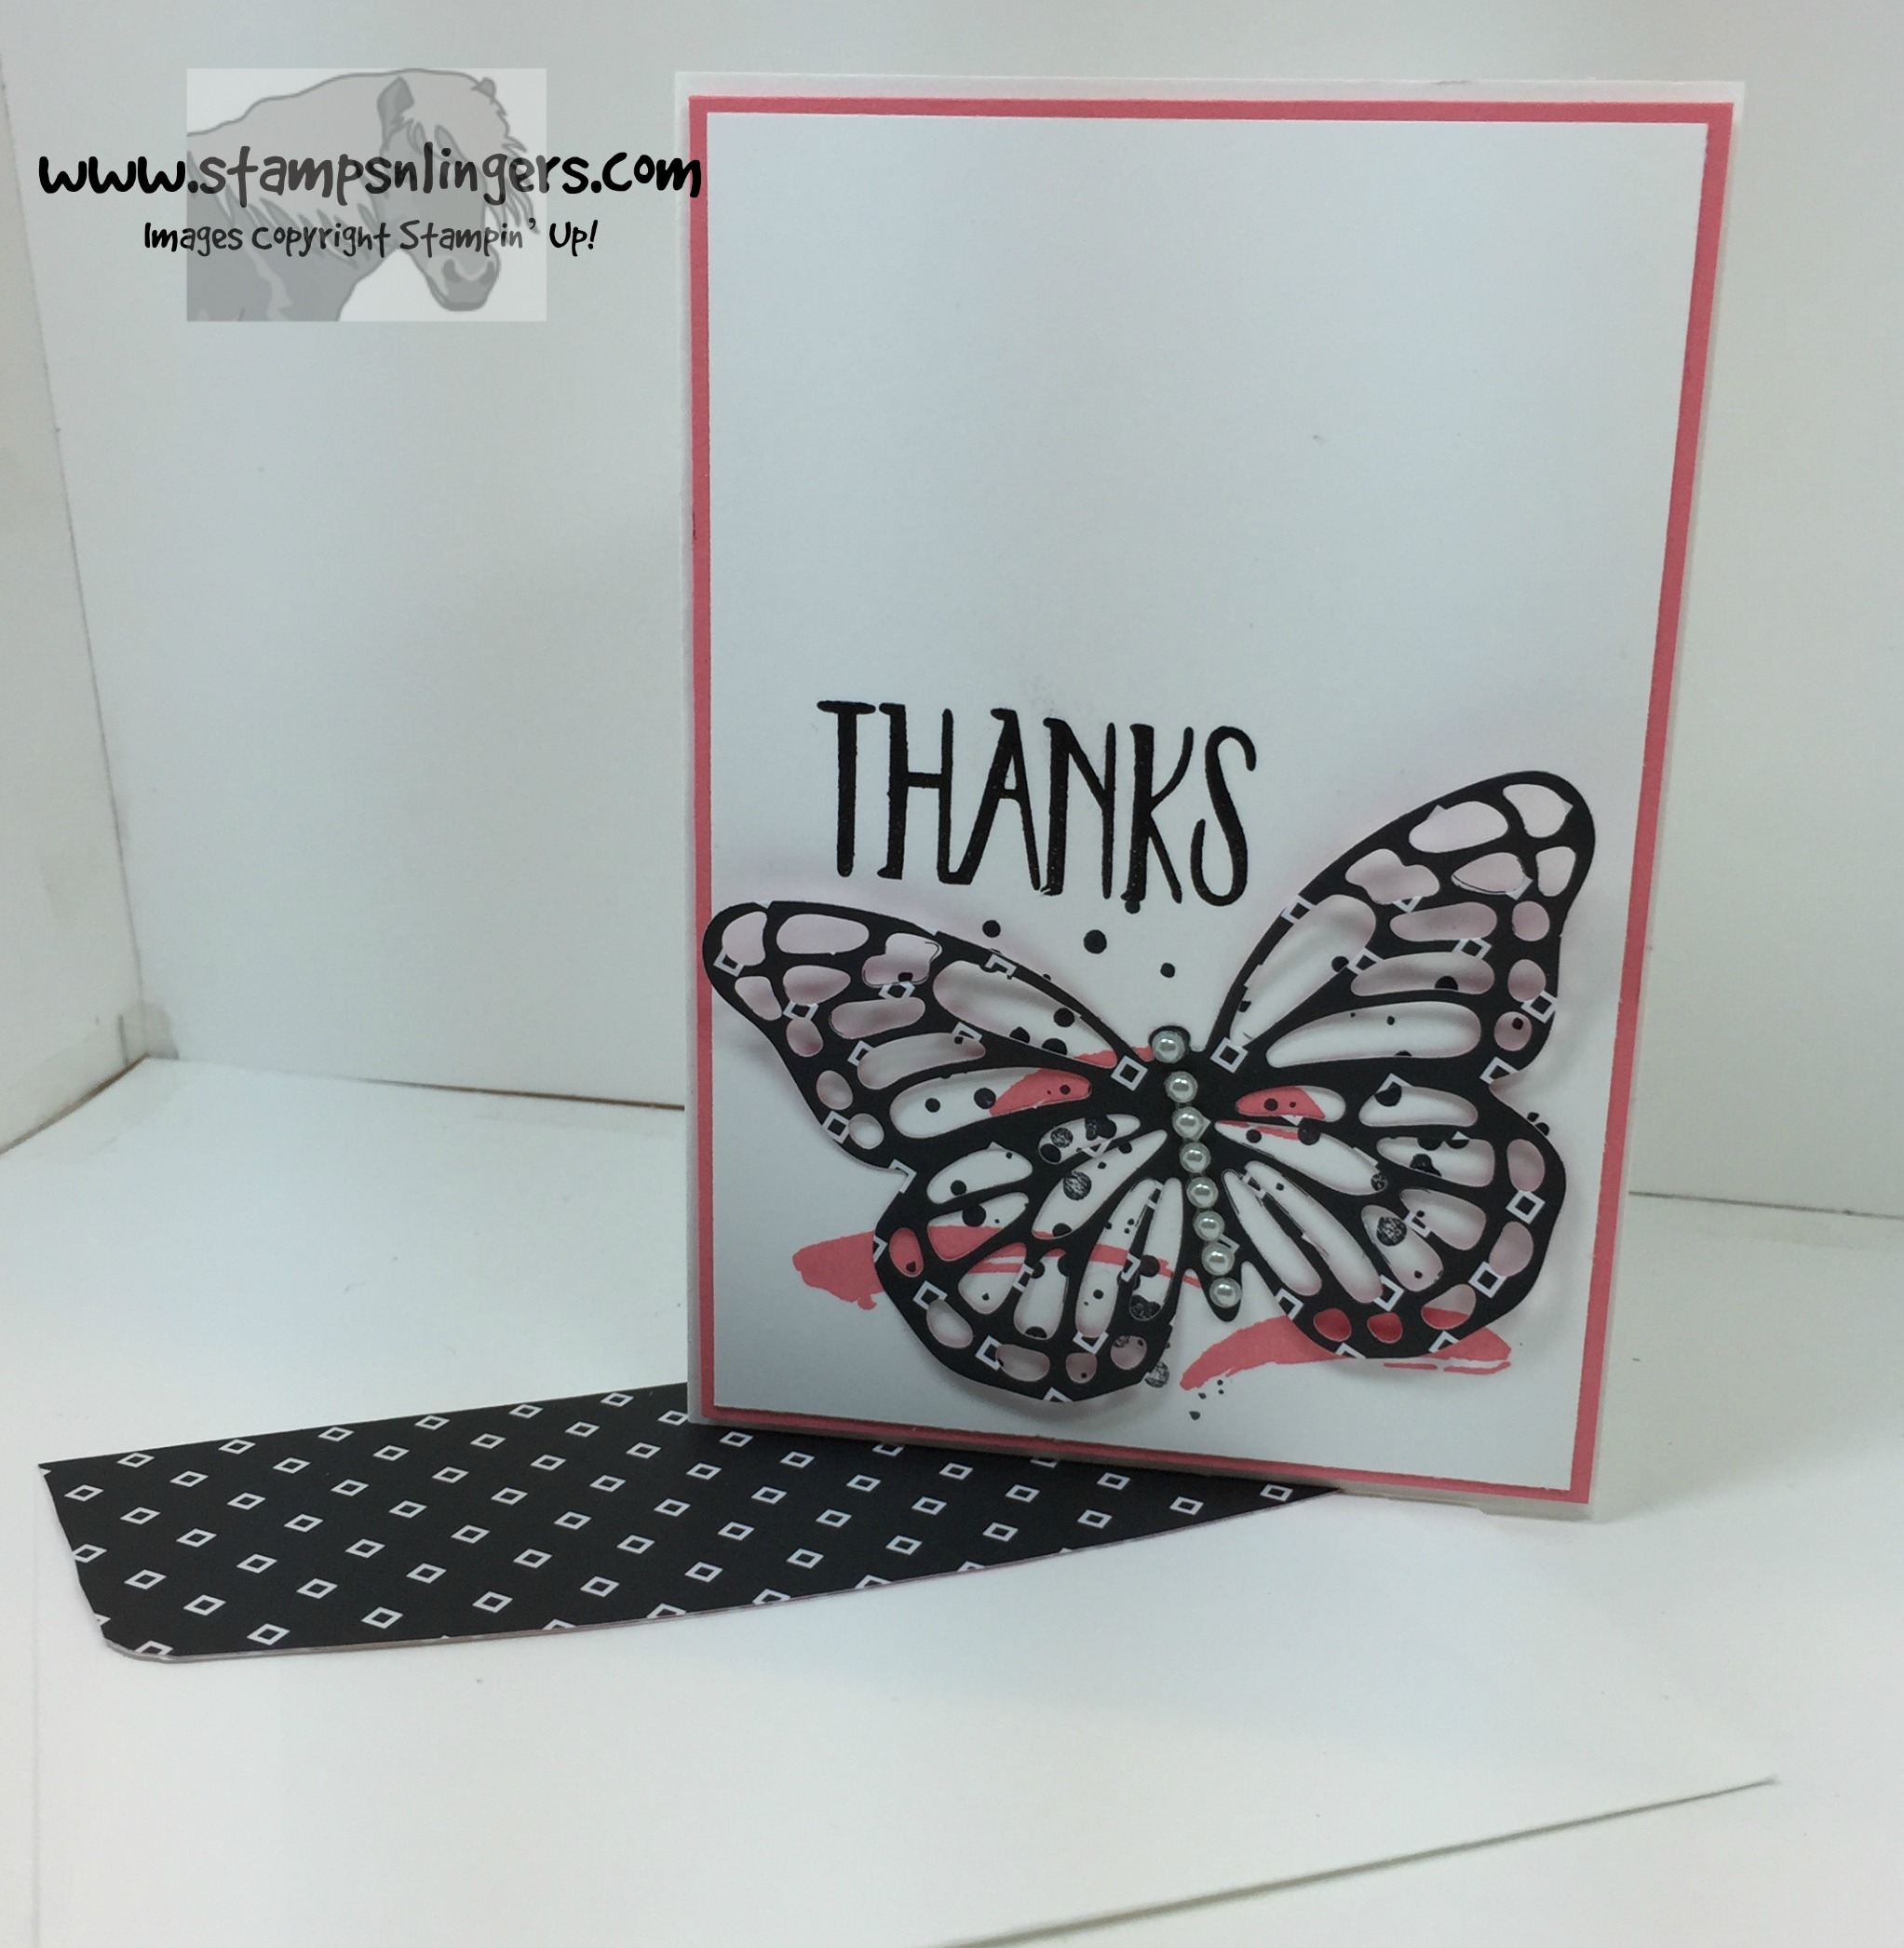 2016 2018 in color butterflies 2 stamps n lingers - Color Butterfly 2